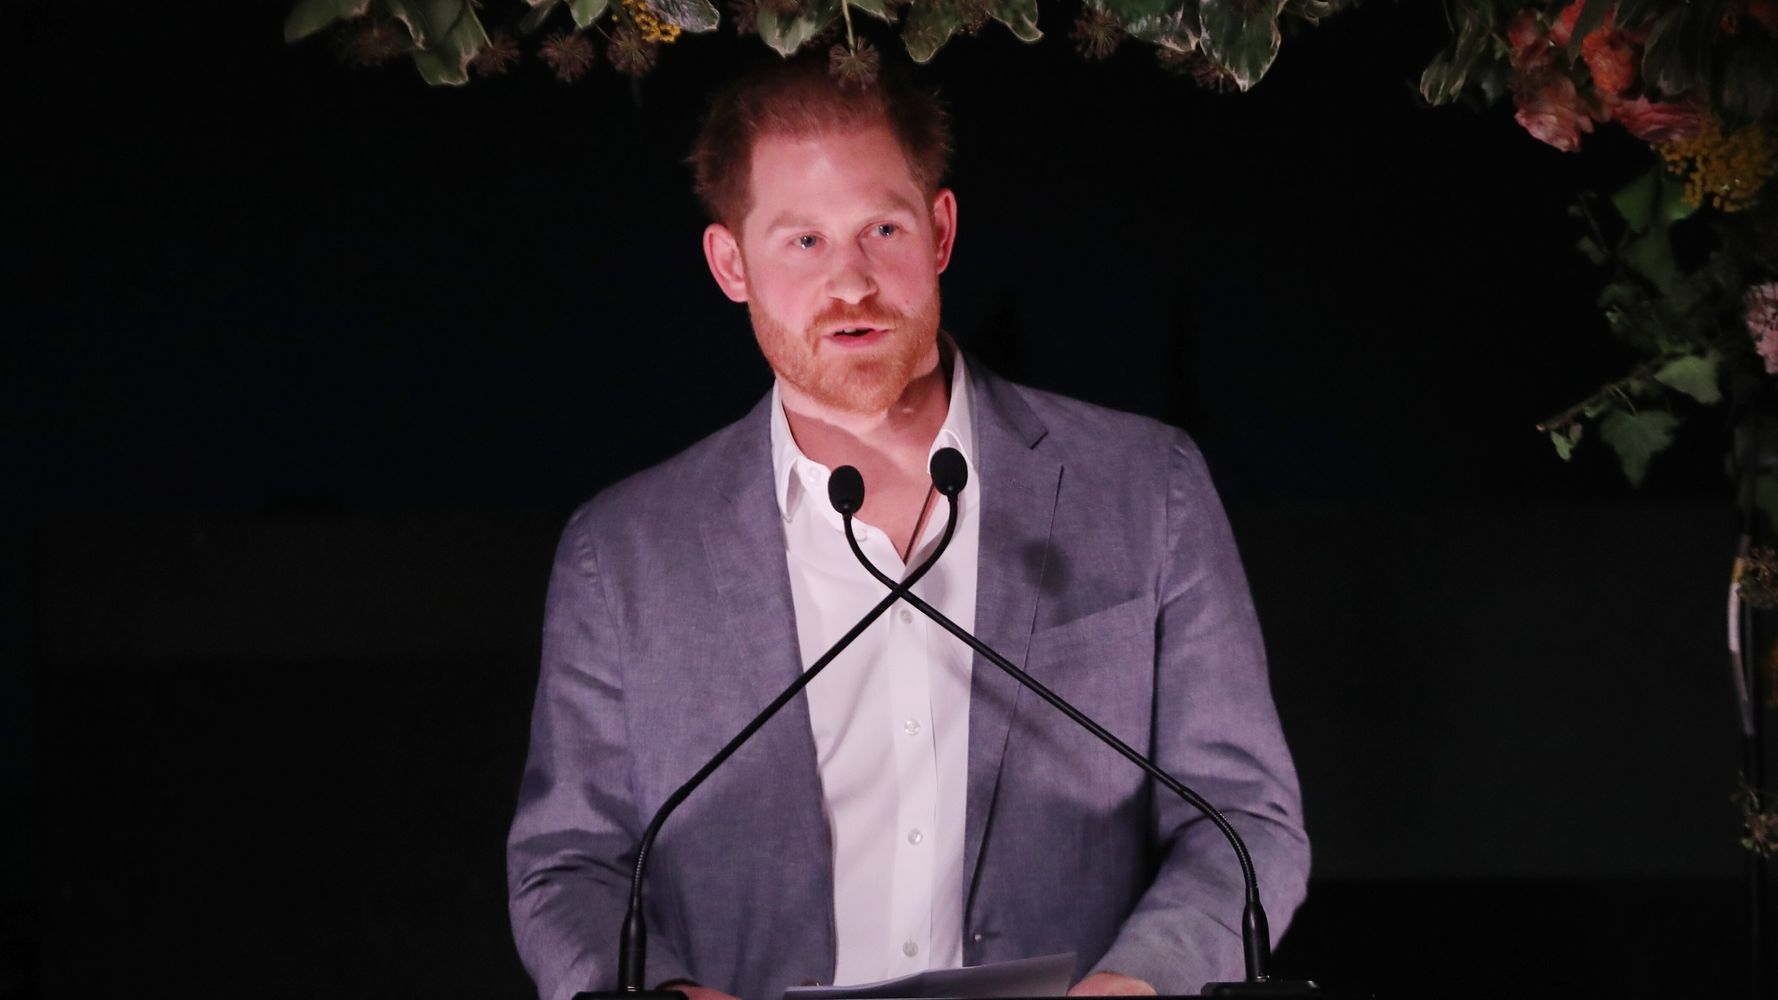 Prince Harry Talks About Royal Exit In Deeply Personal Speech At Sentebale Dinner